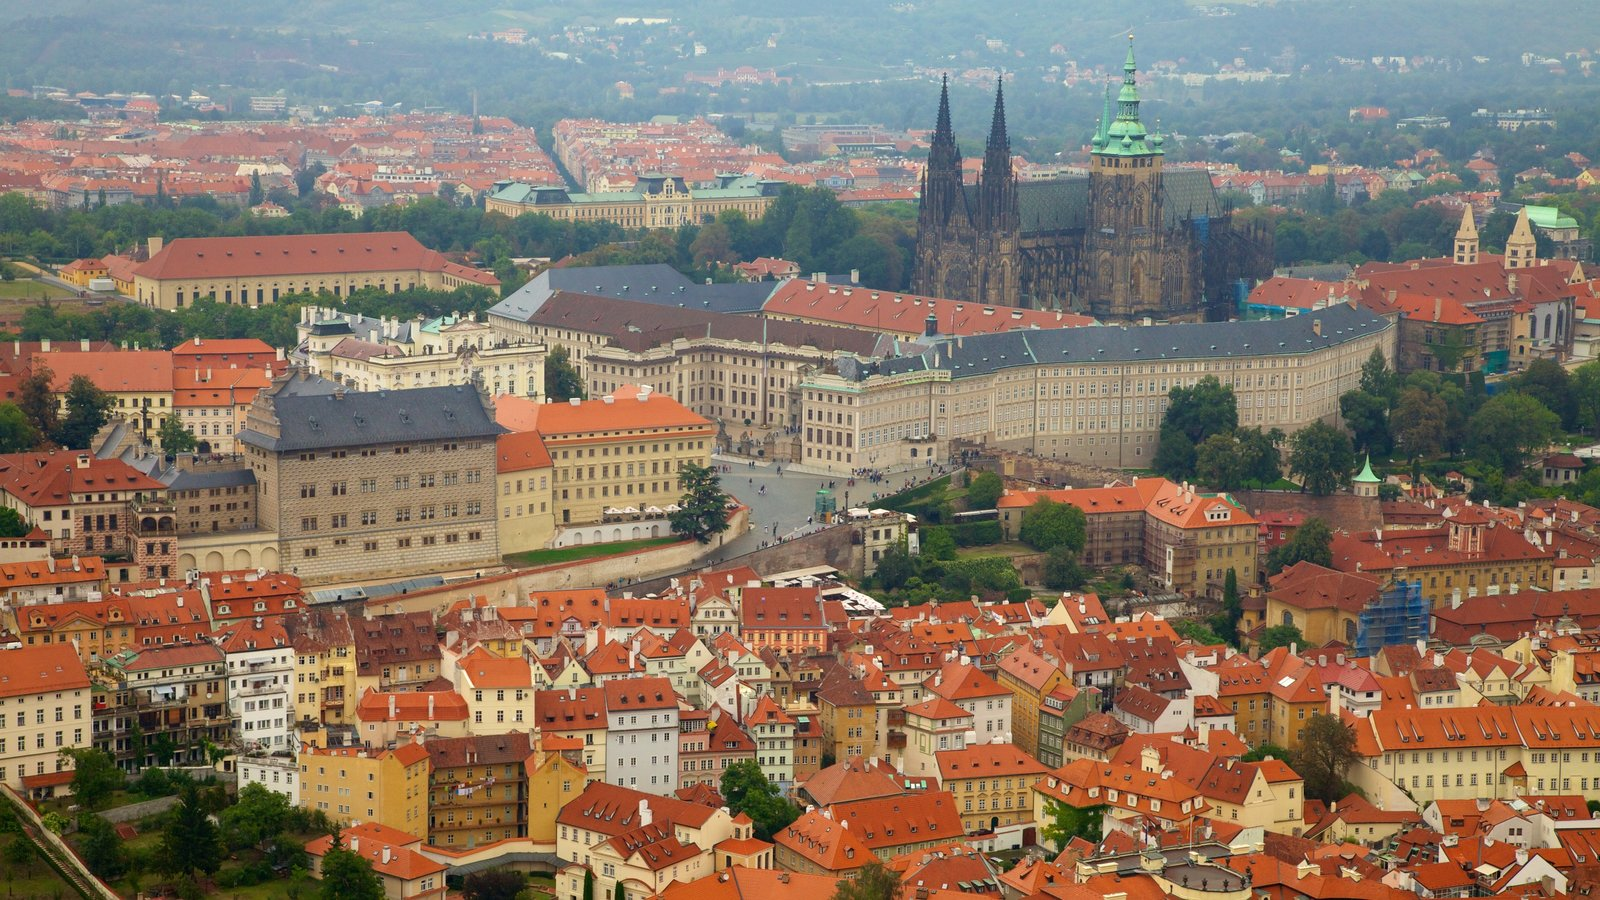 St. Vitus Cathedral showing a church or cathedral, a city and heritage architecture